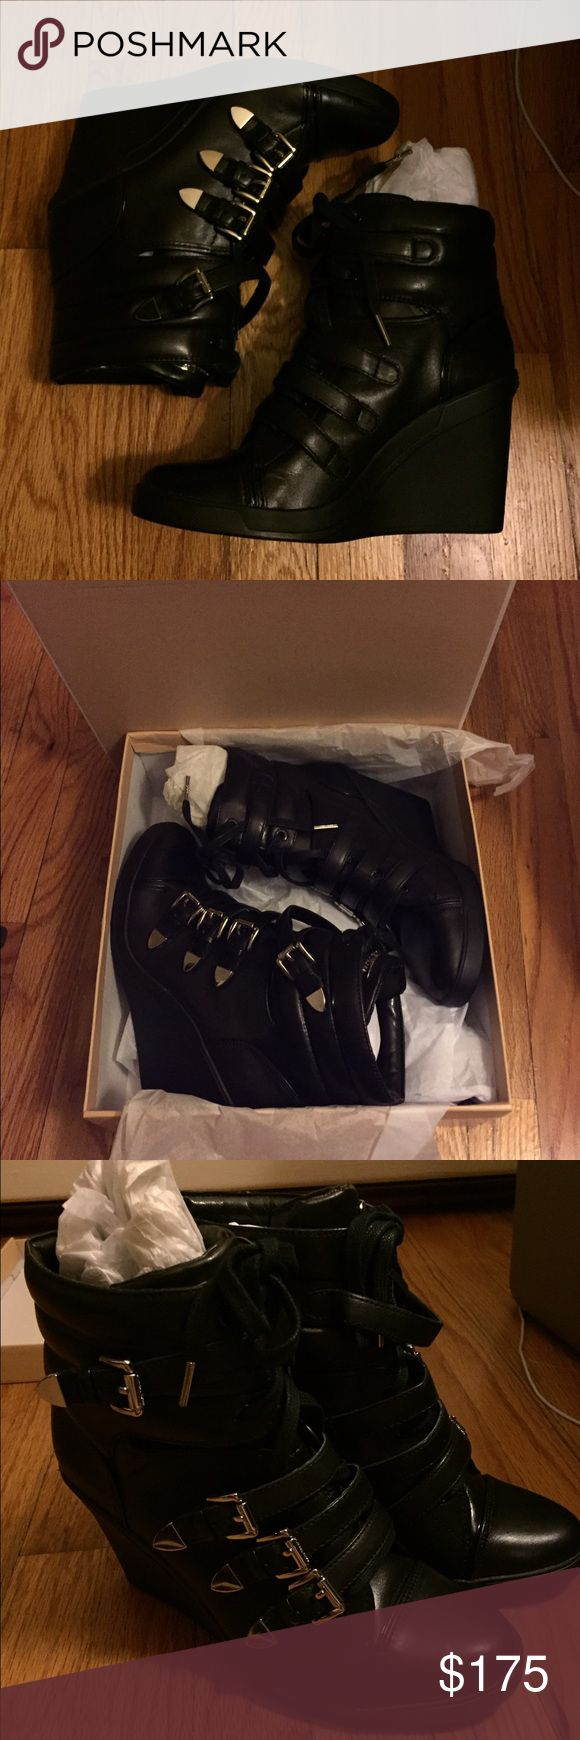 Brand New Michael Kors Black Wedge Sneakers 10 Brand new in box with all original packaging. Michael Kors Black wedge sneakers. Style is Robin. Size 10. Purchased at the Michael Kors in the mall near me for full price. Price is absolutely firm!!! Michael Kors Shoes Wedges